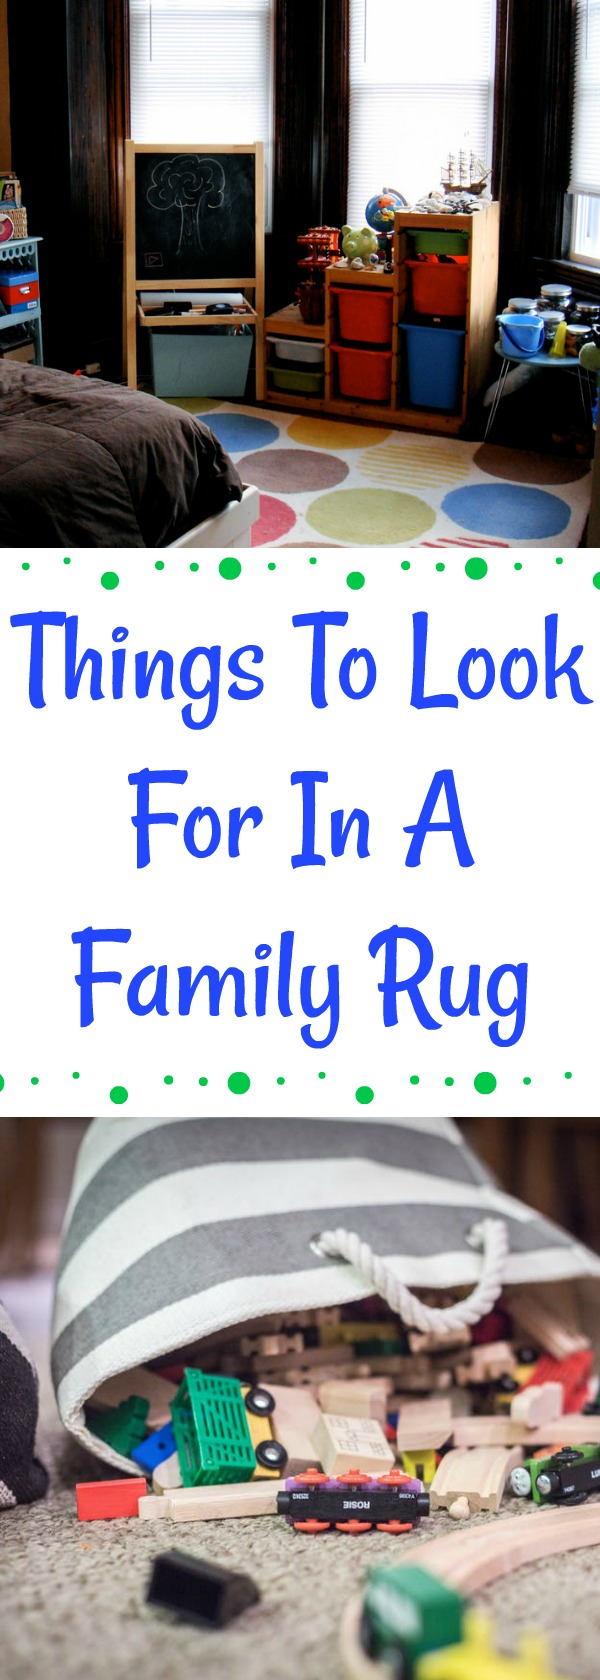 Things To Look For In A Family Rug, decorating a home with children, rugs for homes, how to pick a rug for your home